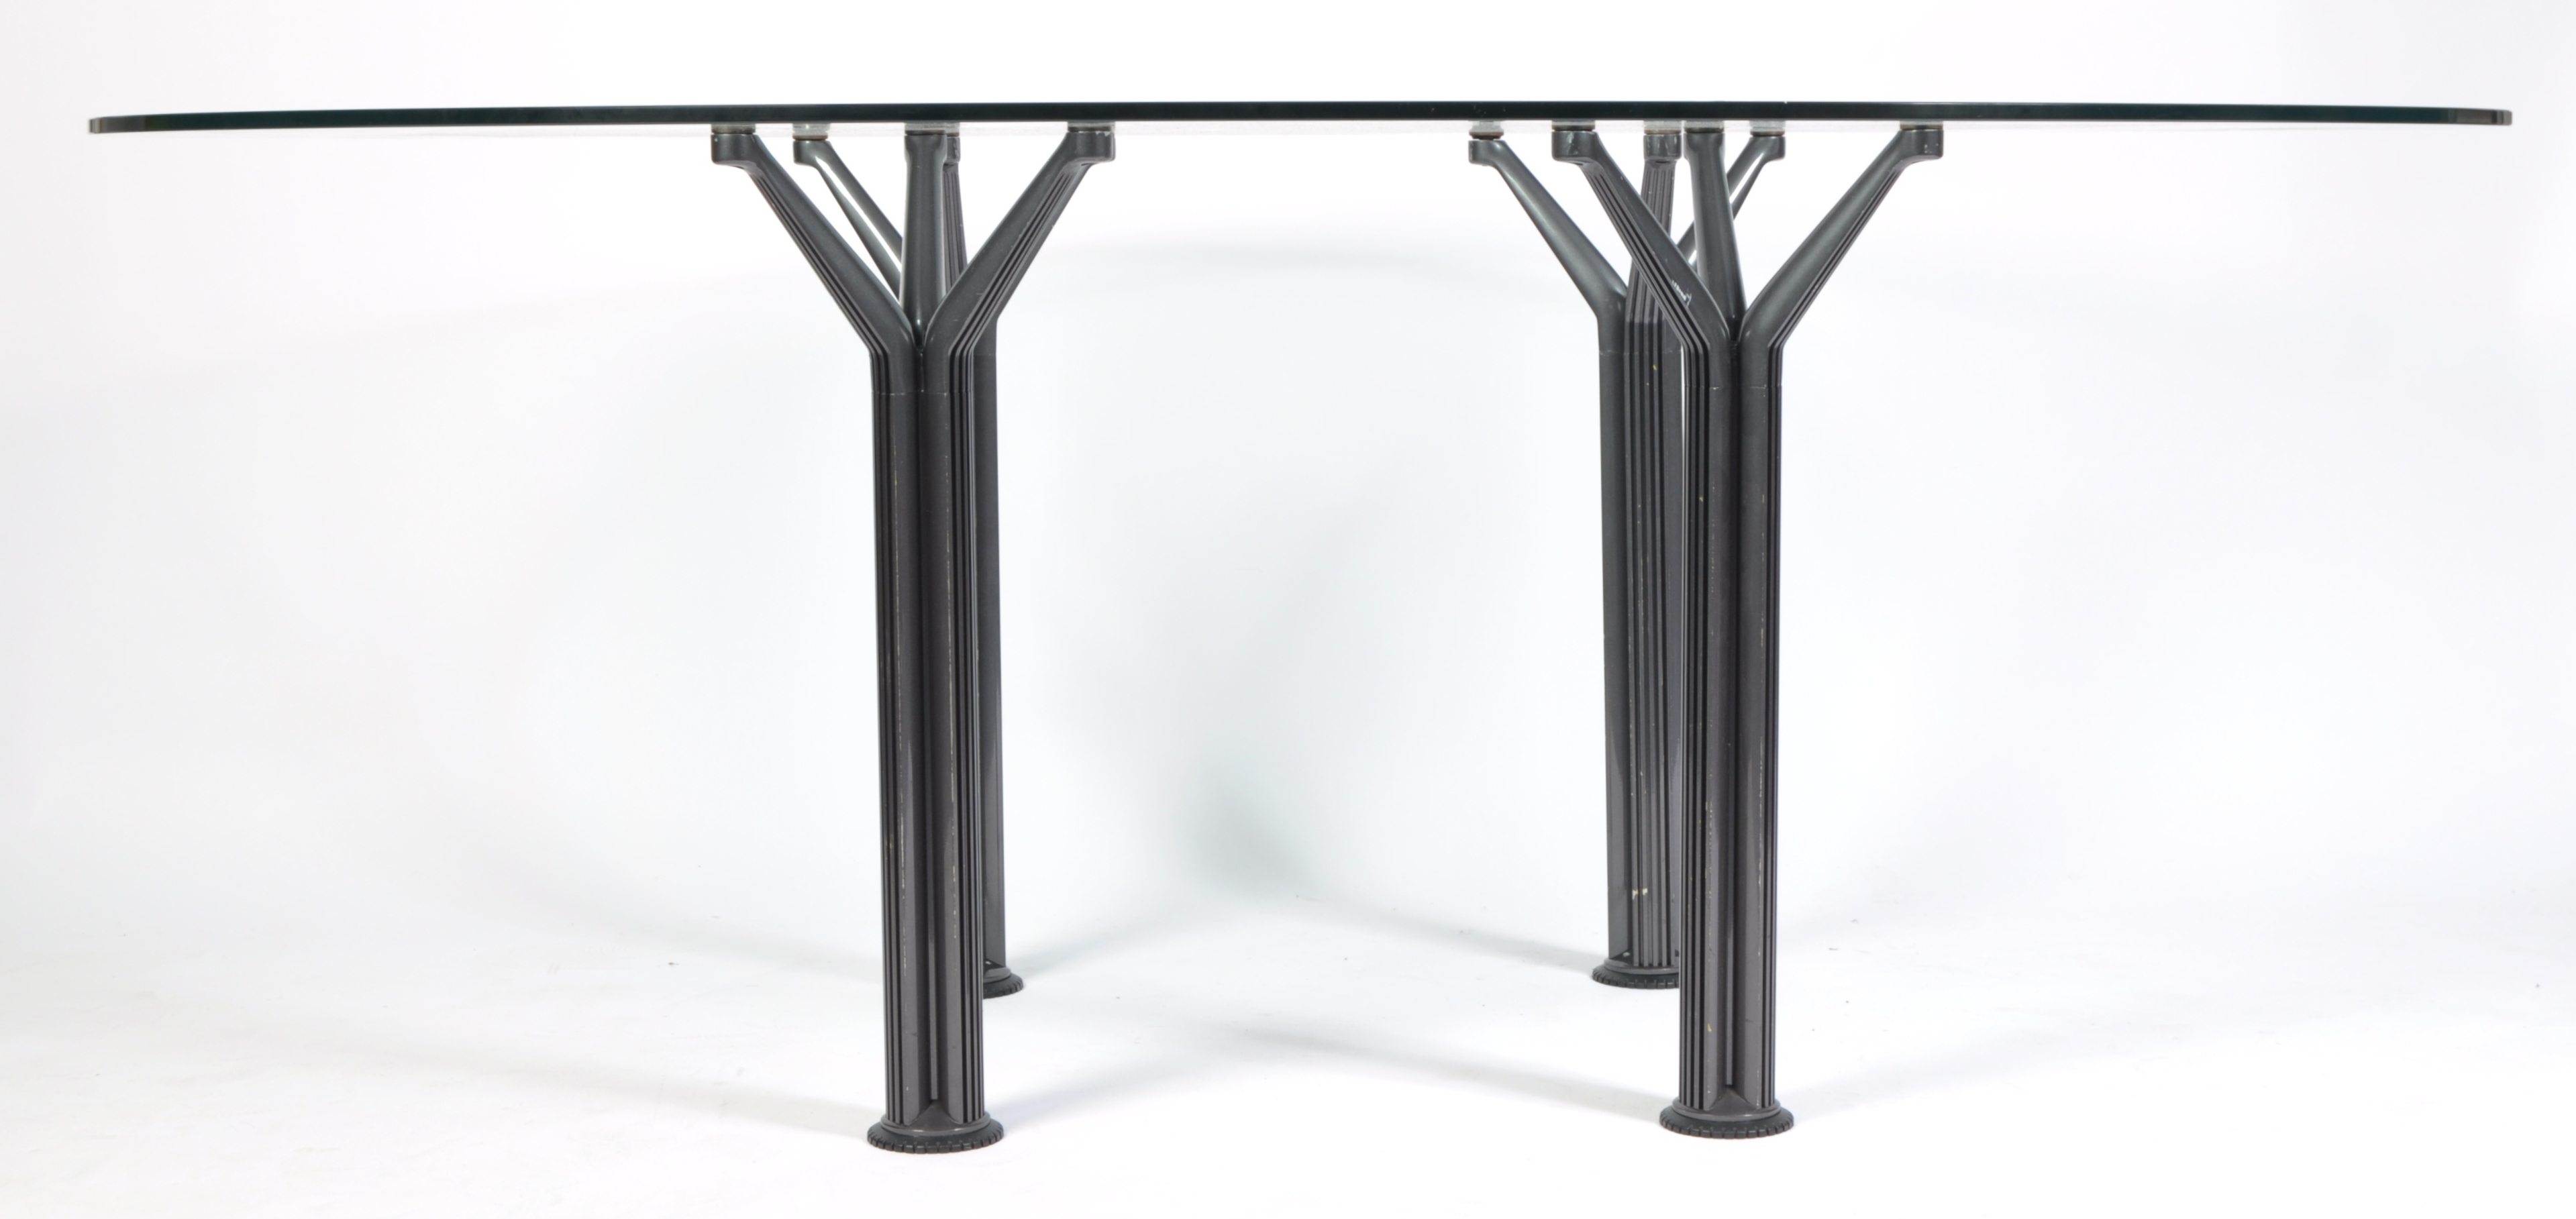 Lot 36 - CONTEMPORARY DESIGNER LARGE OVAL GLASS DINING TABLE